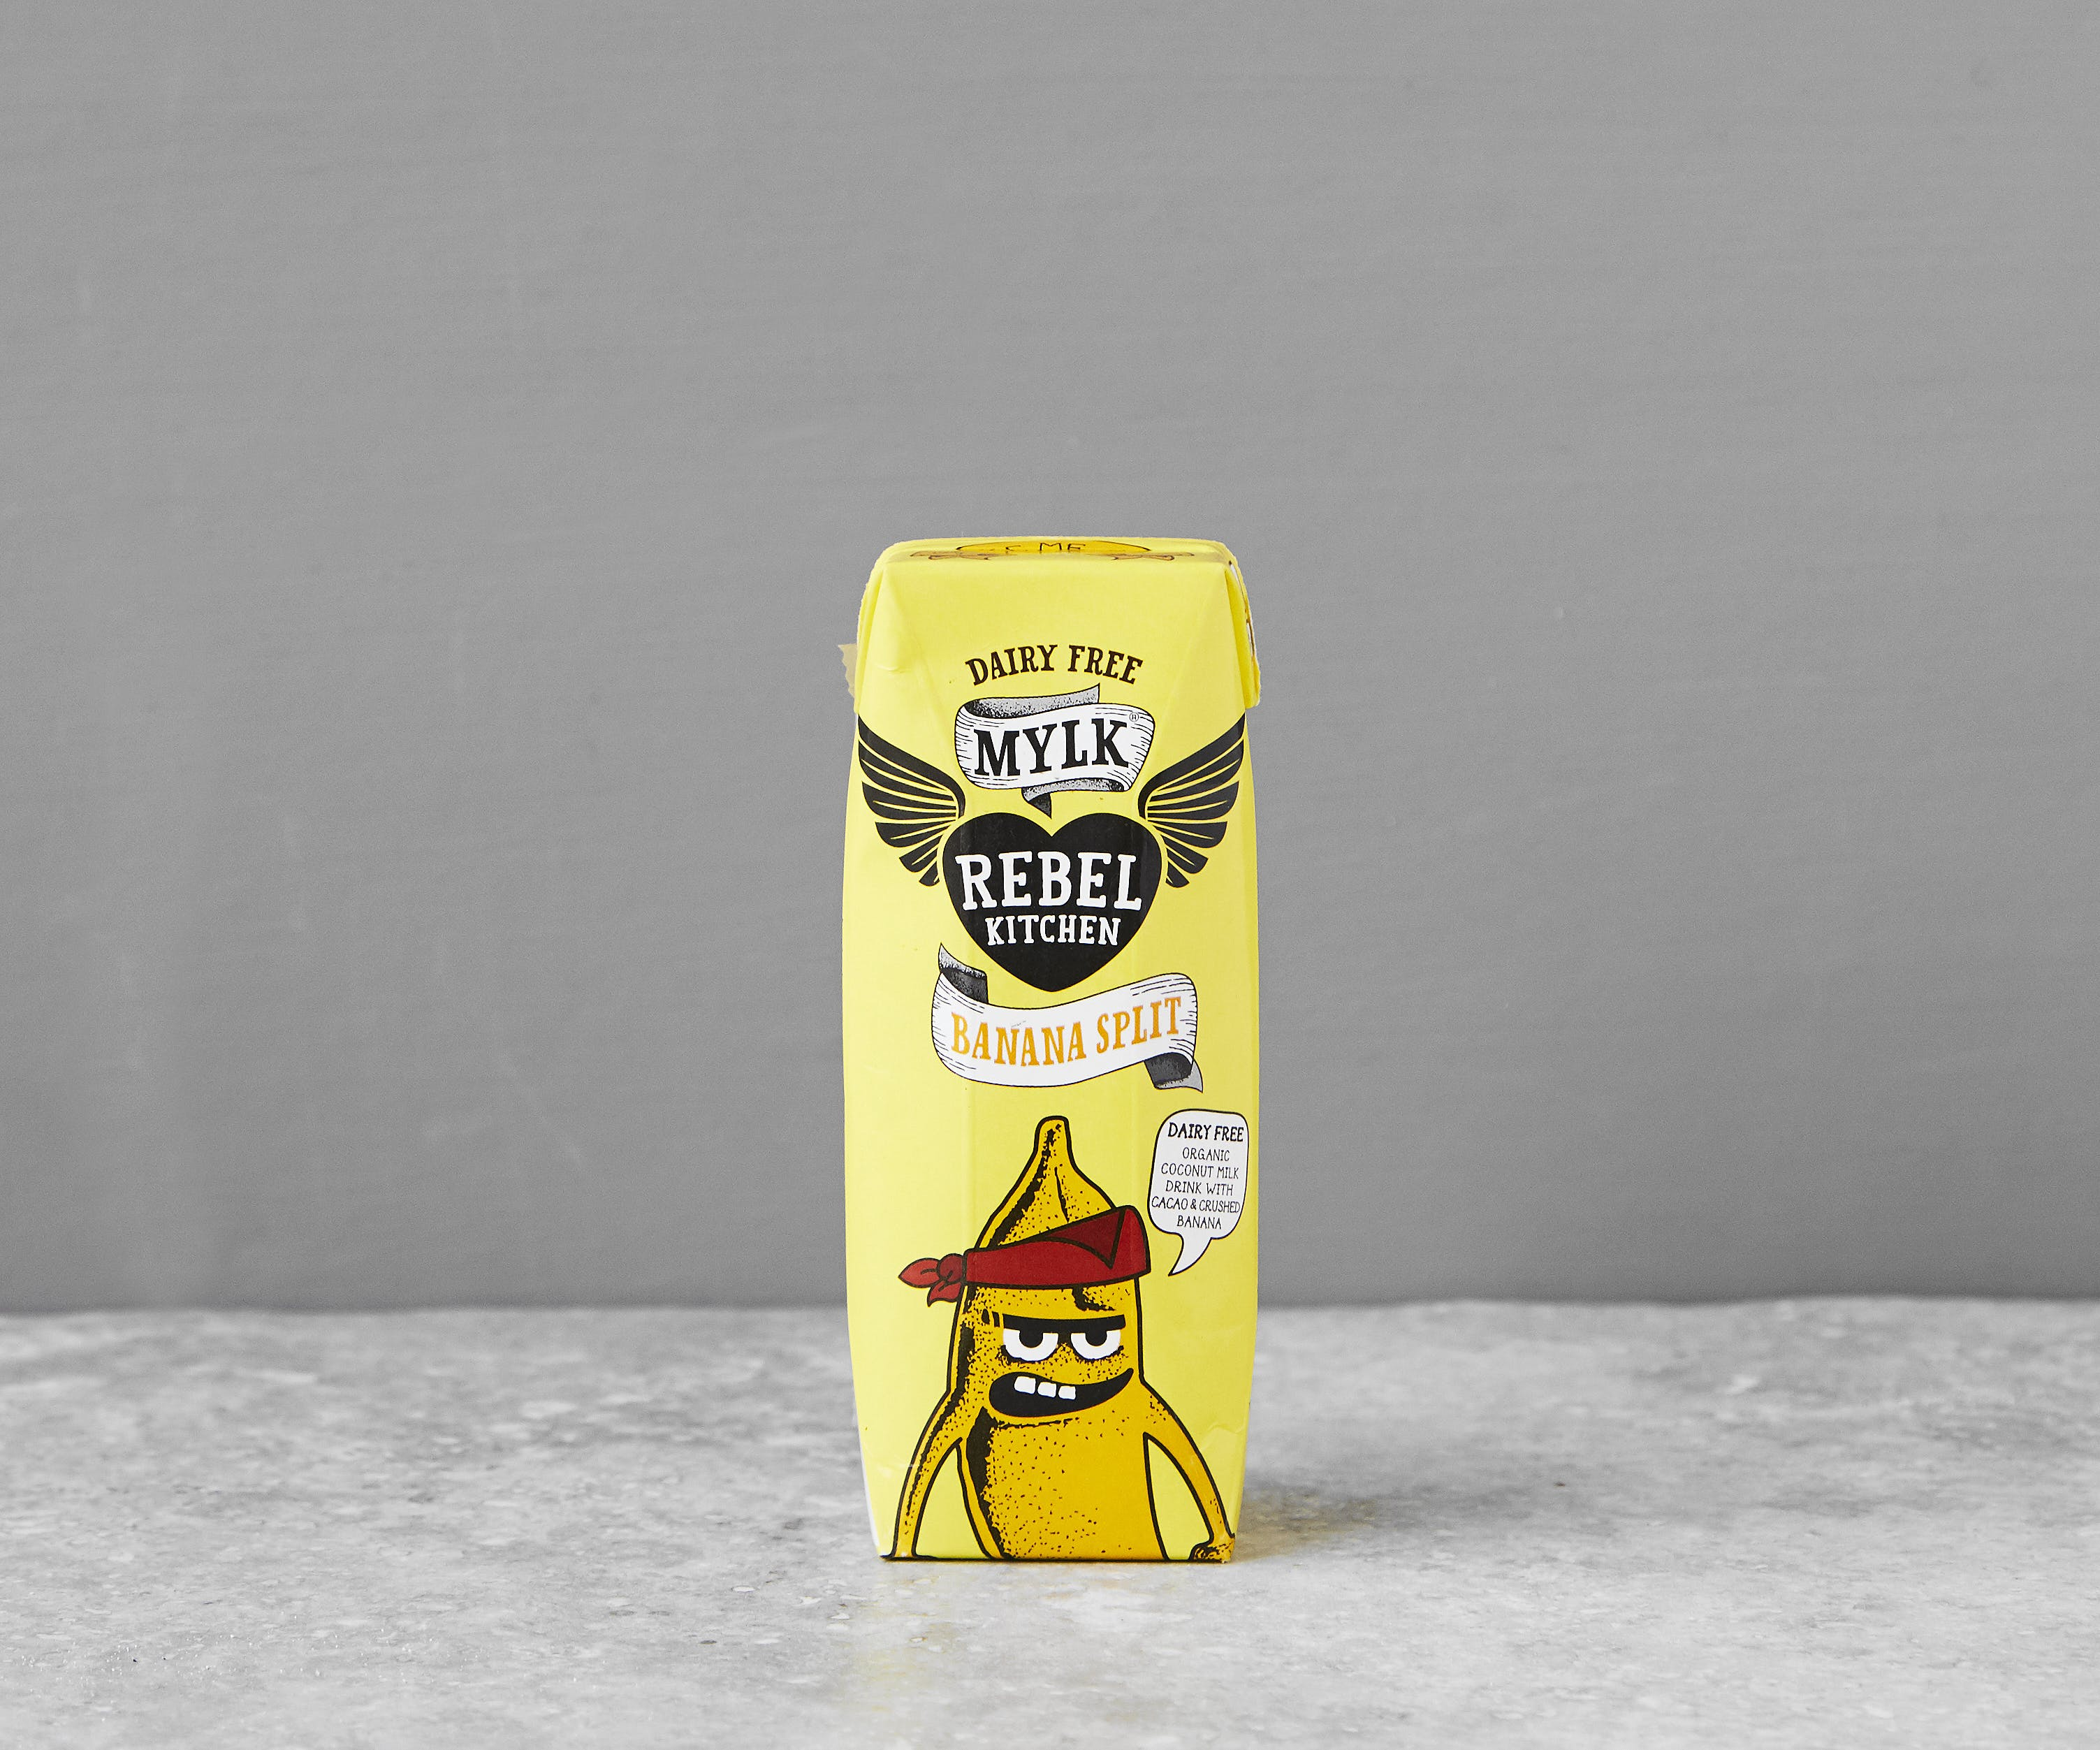 Rebel Kitchen Banana Dairy-Free Mylk (Milk Alternative)